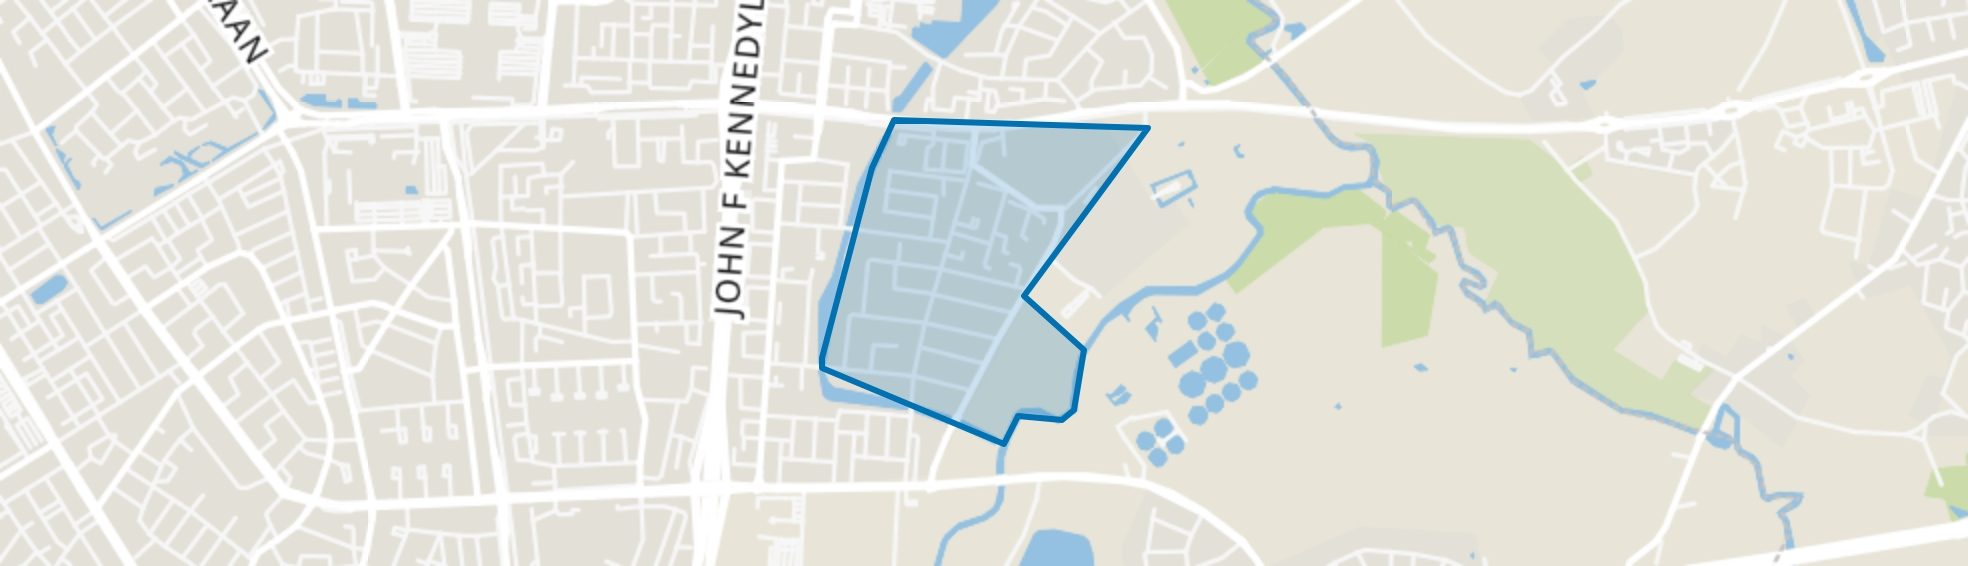 Oude Gracht-Oost, Eindhoven map